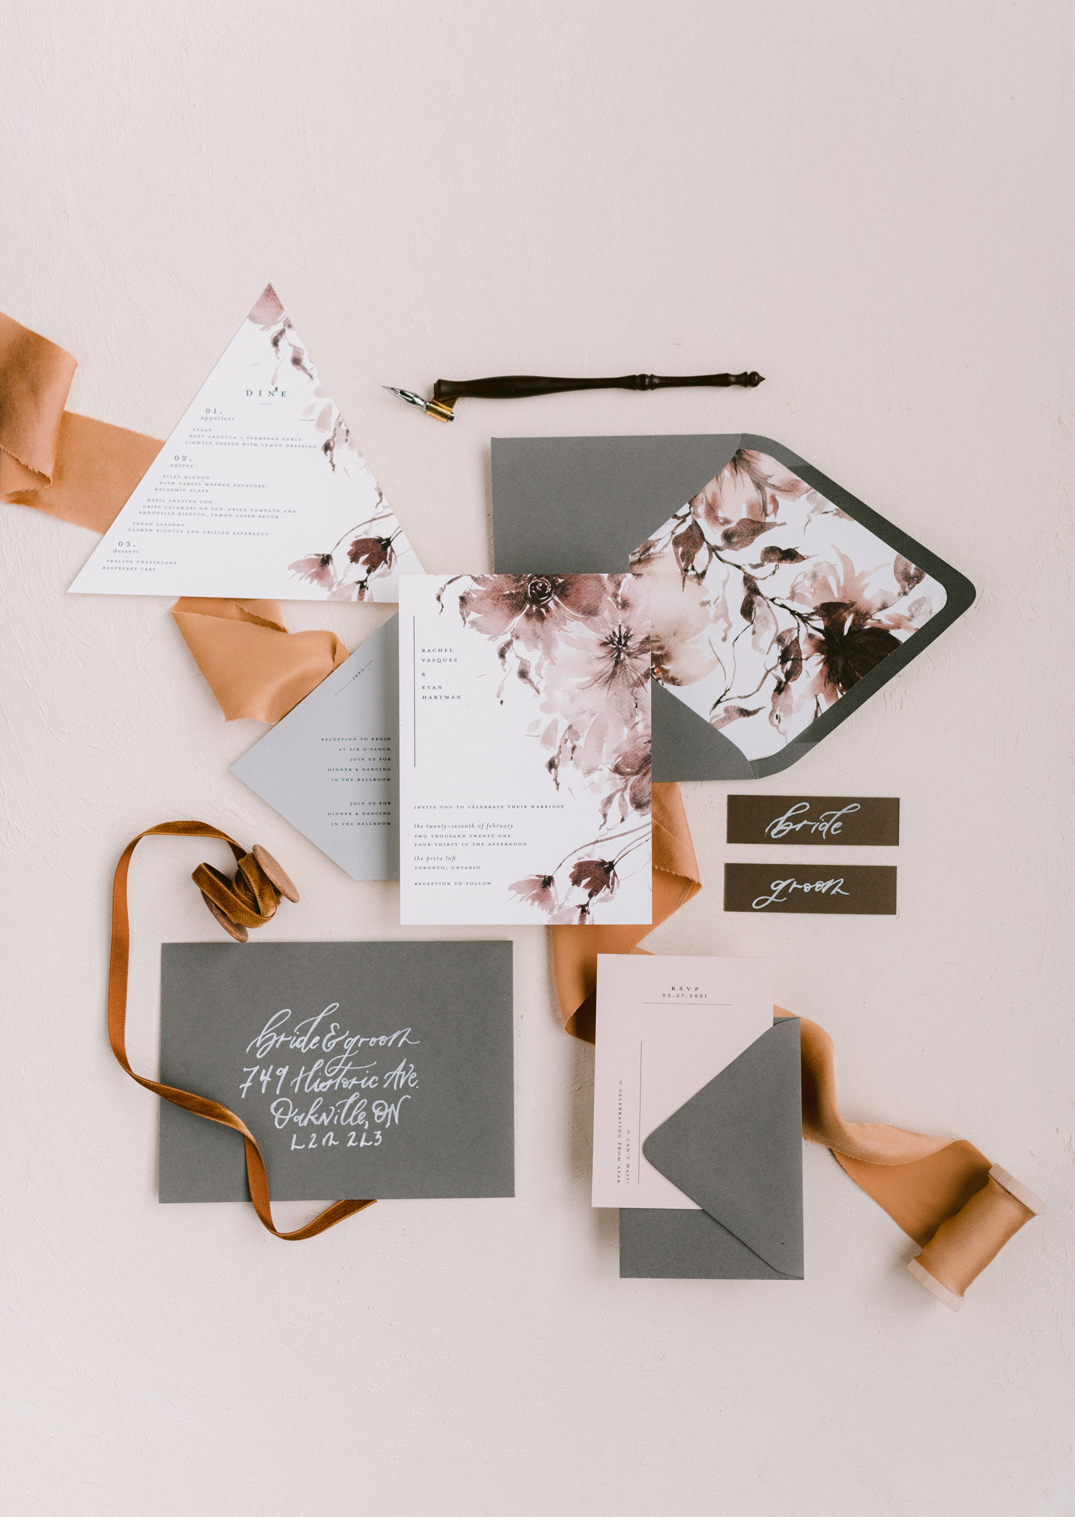 Flatlay of a Wedding stationary set with invitation card, menu and name tags